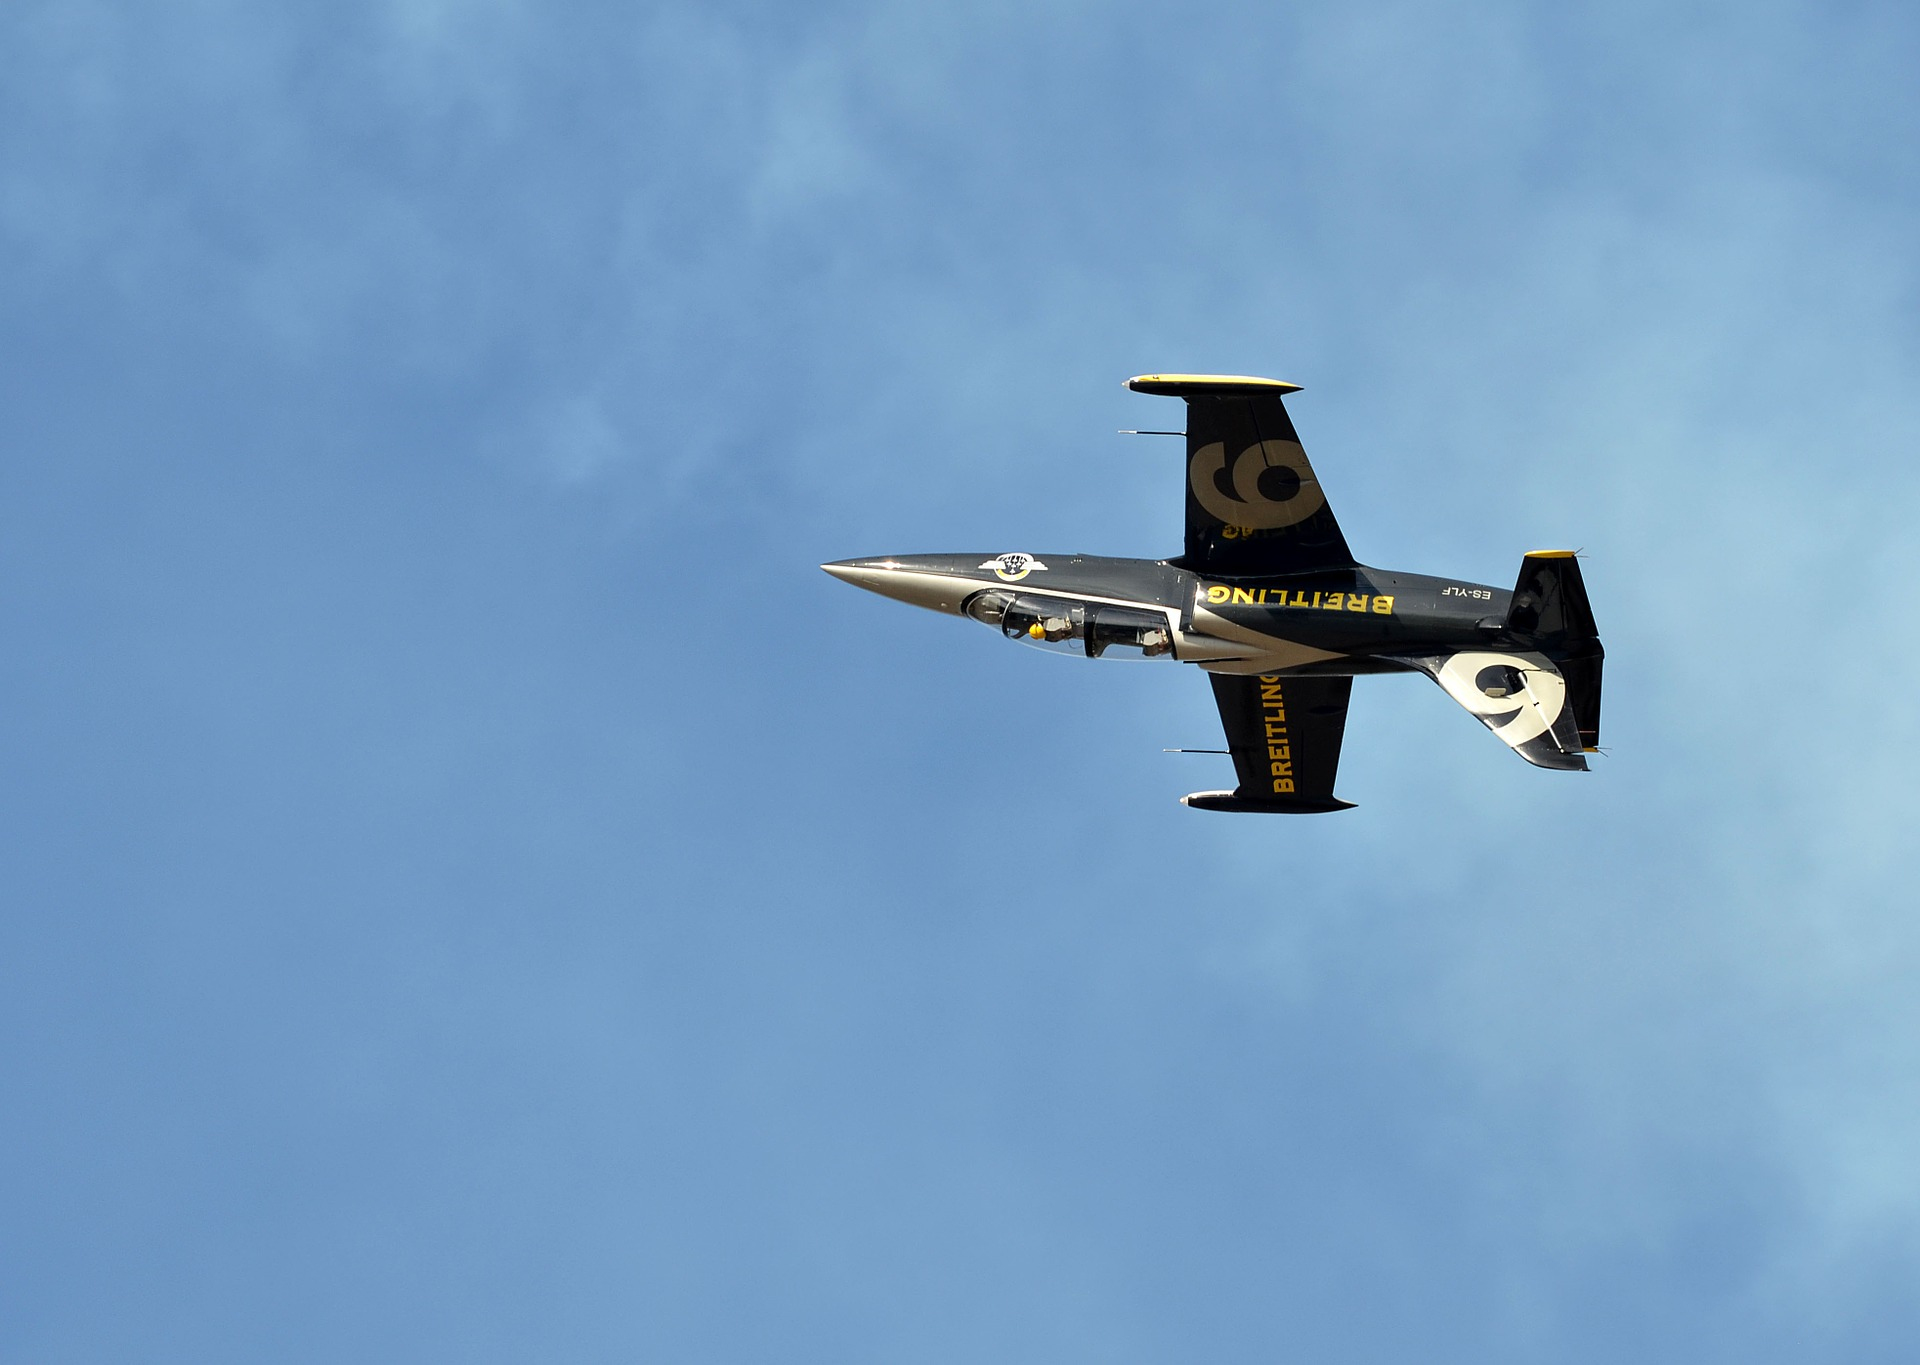 Breitling fighter aircraft